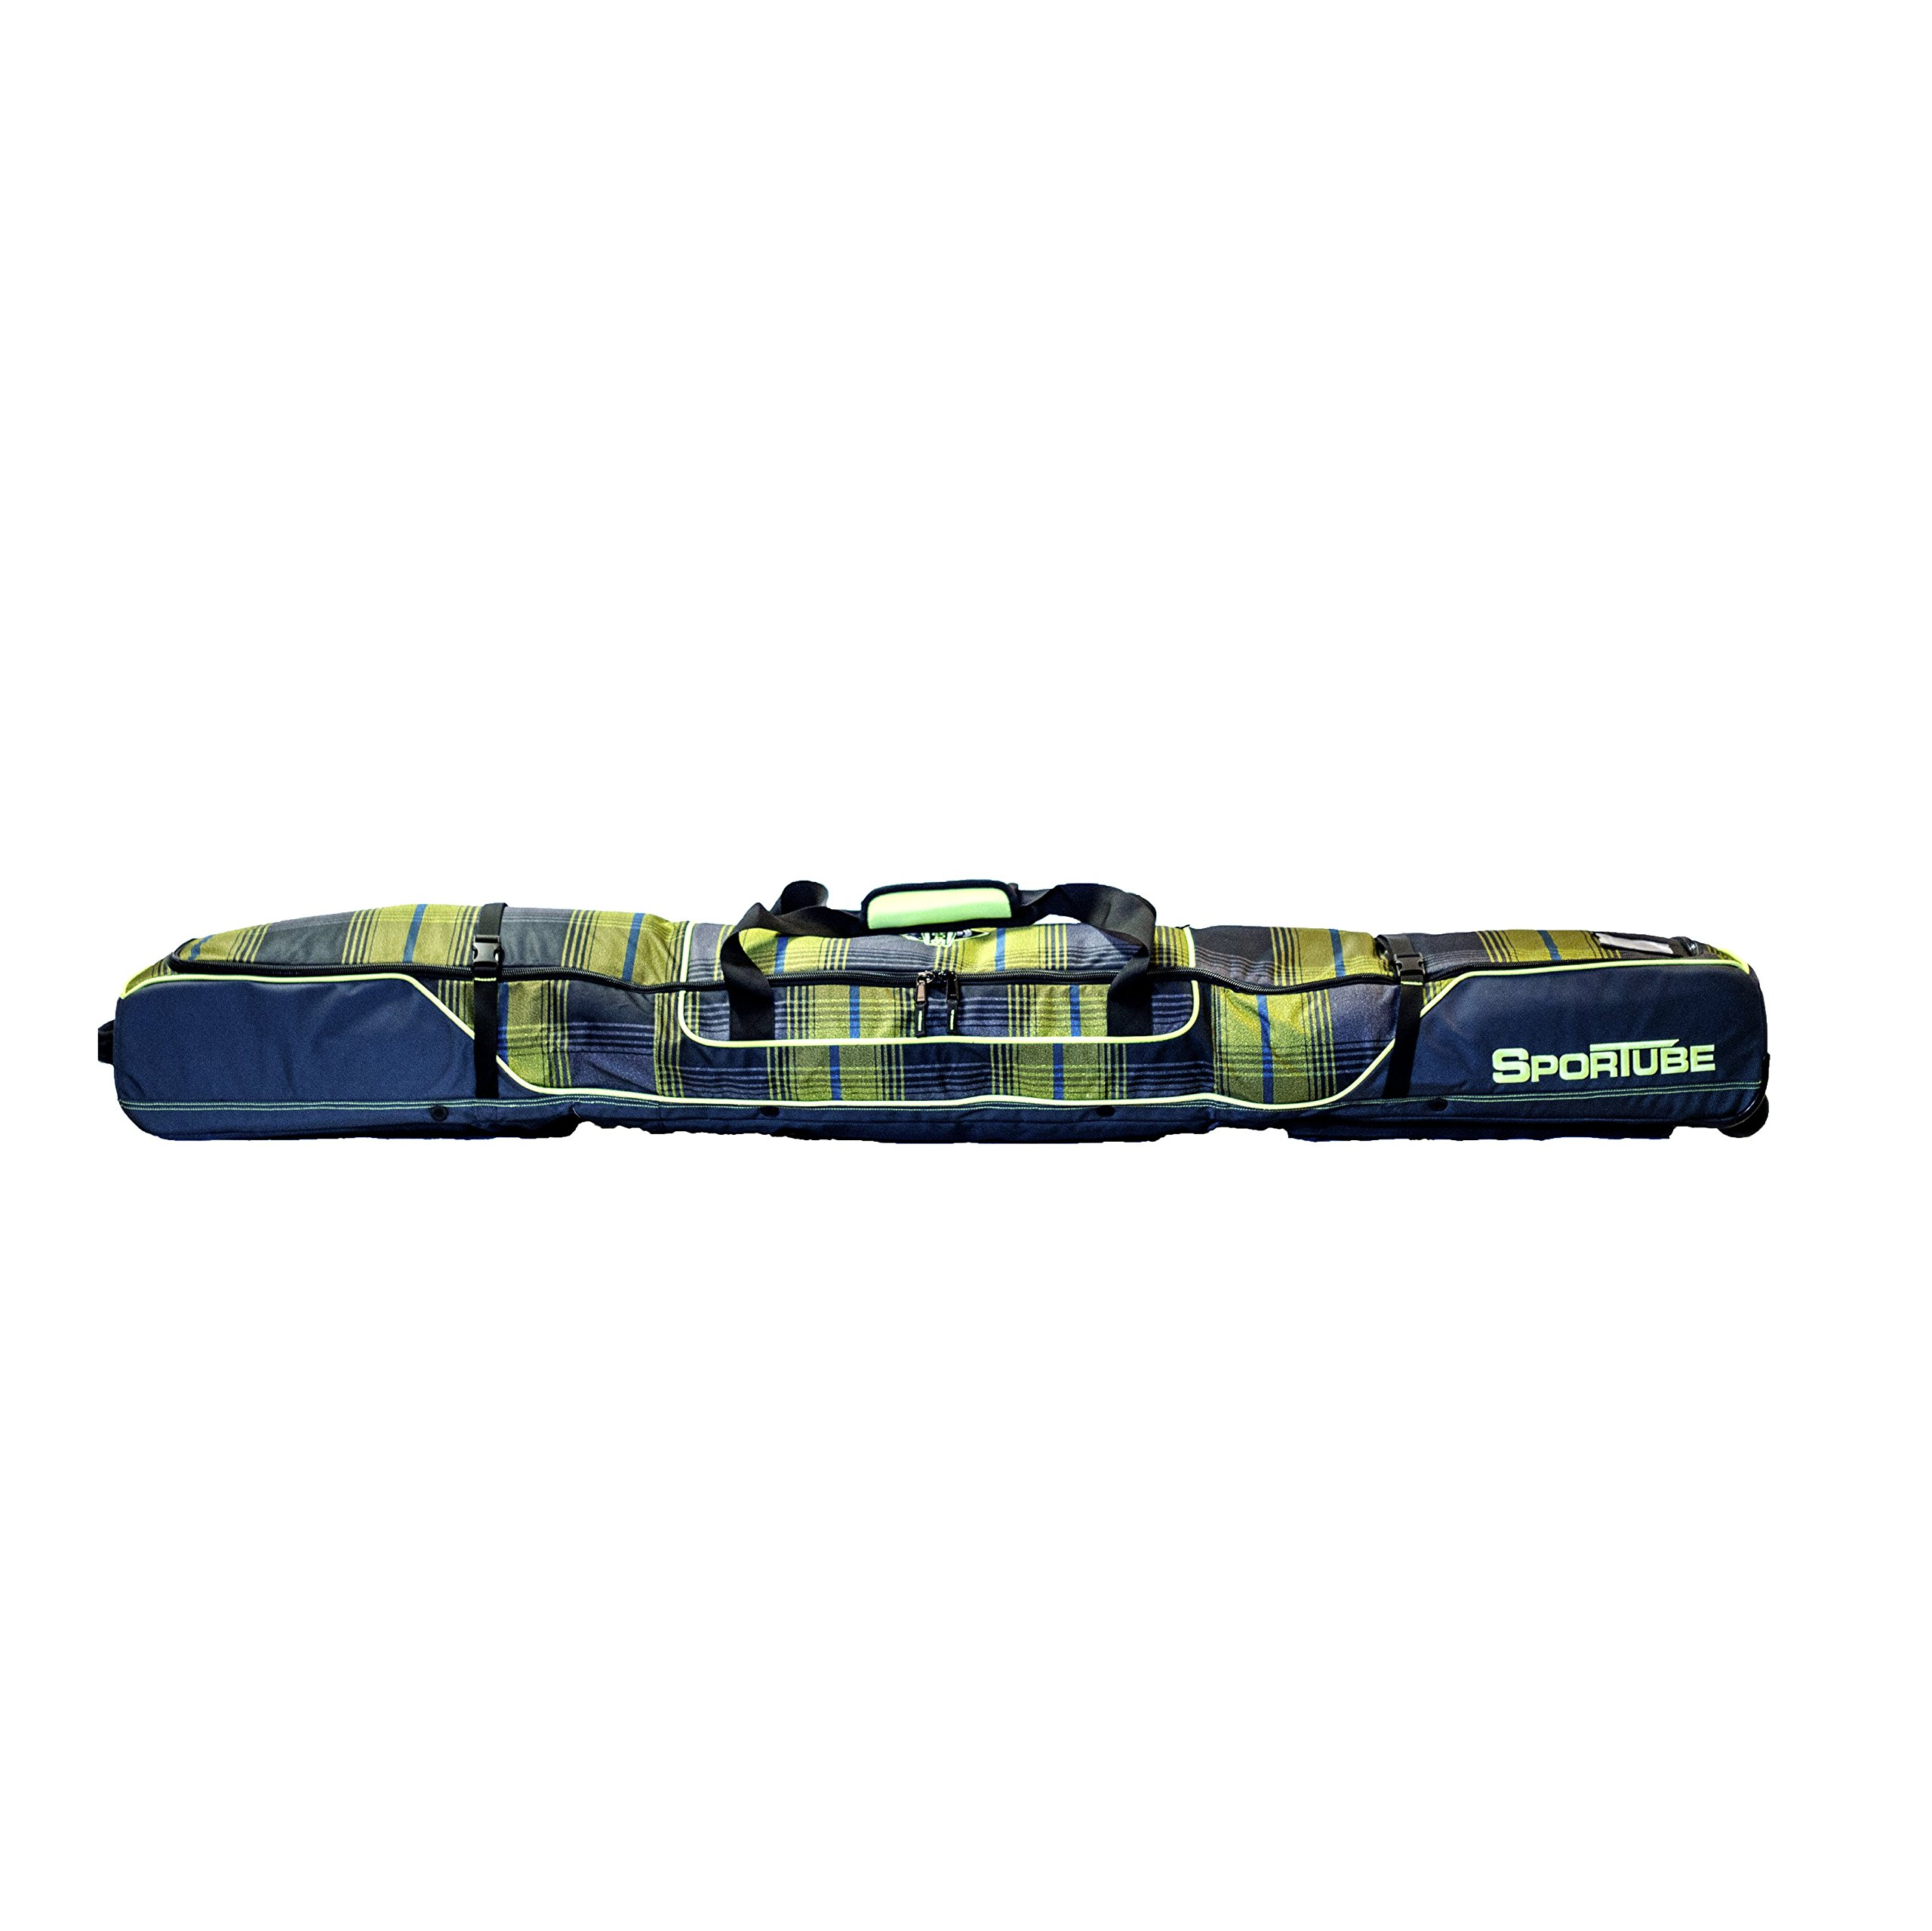 Sportube Ski shield Double Padded Ski Bag with Gear shield Plaid